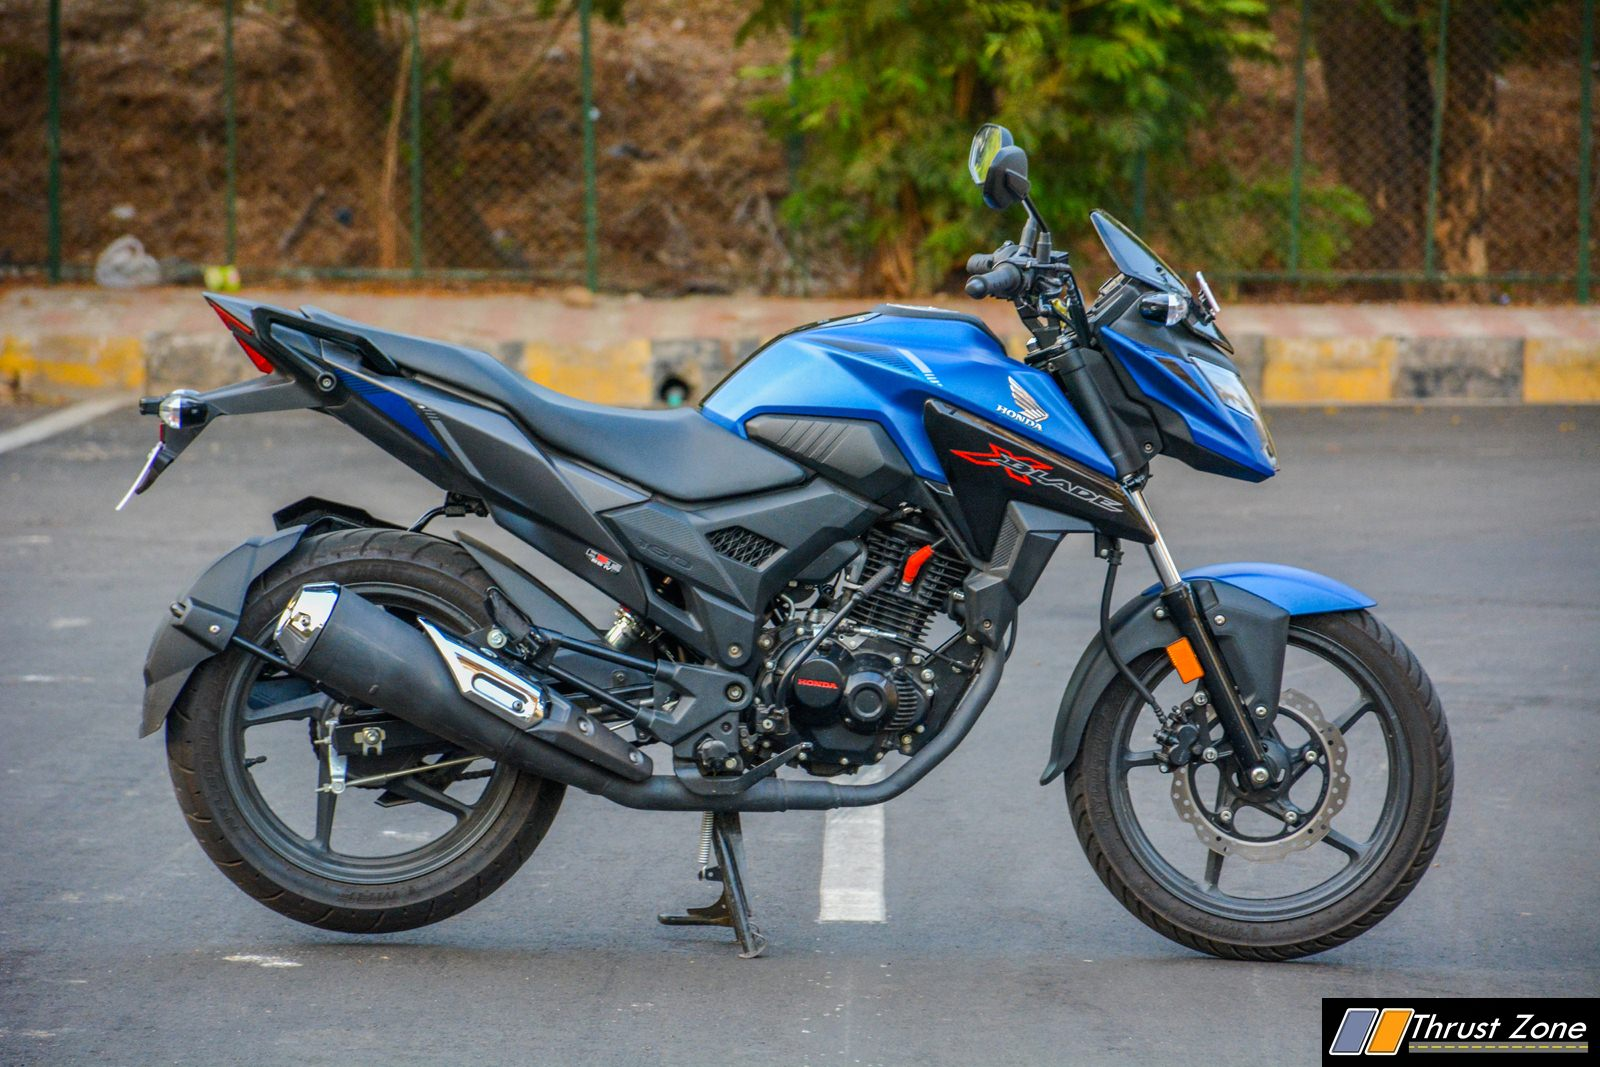 https://www.thrustzone.com/wp-content/uploads/2018/05/2019-Honda-XBlade-160-Review-20.jpg